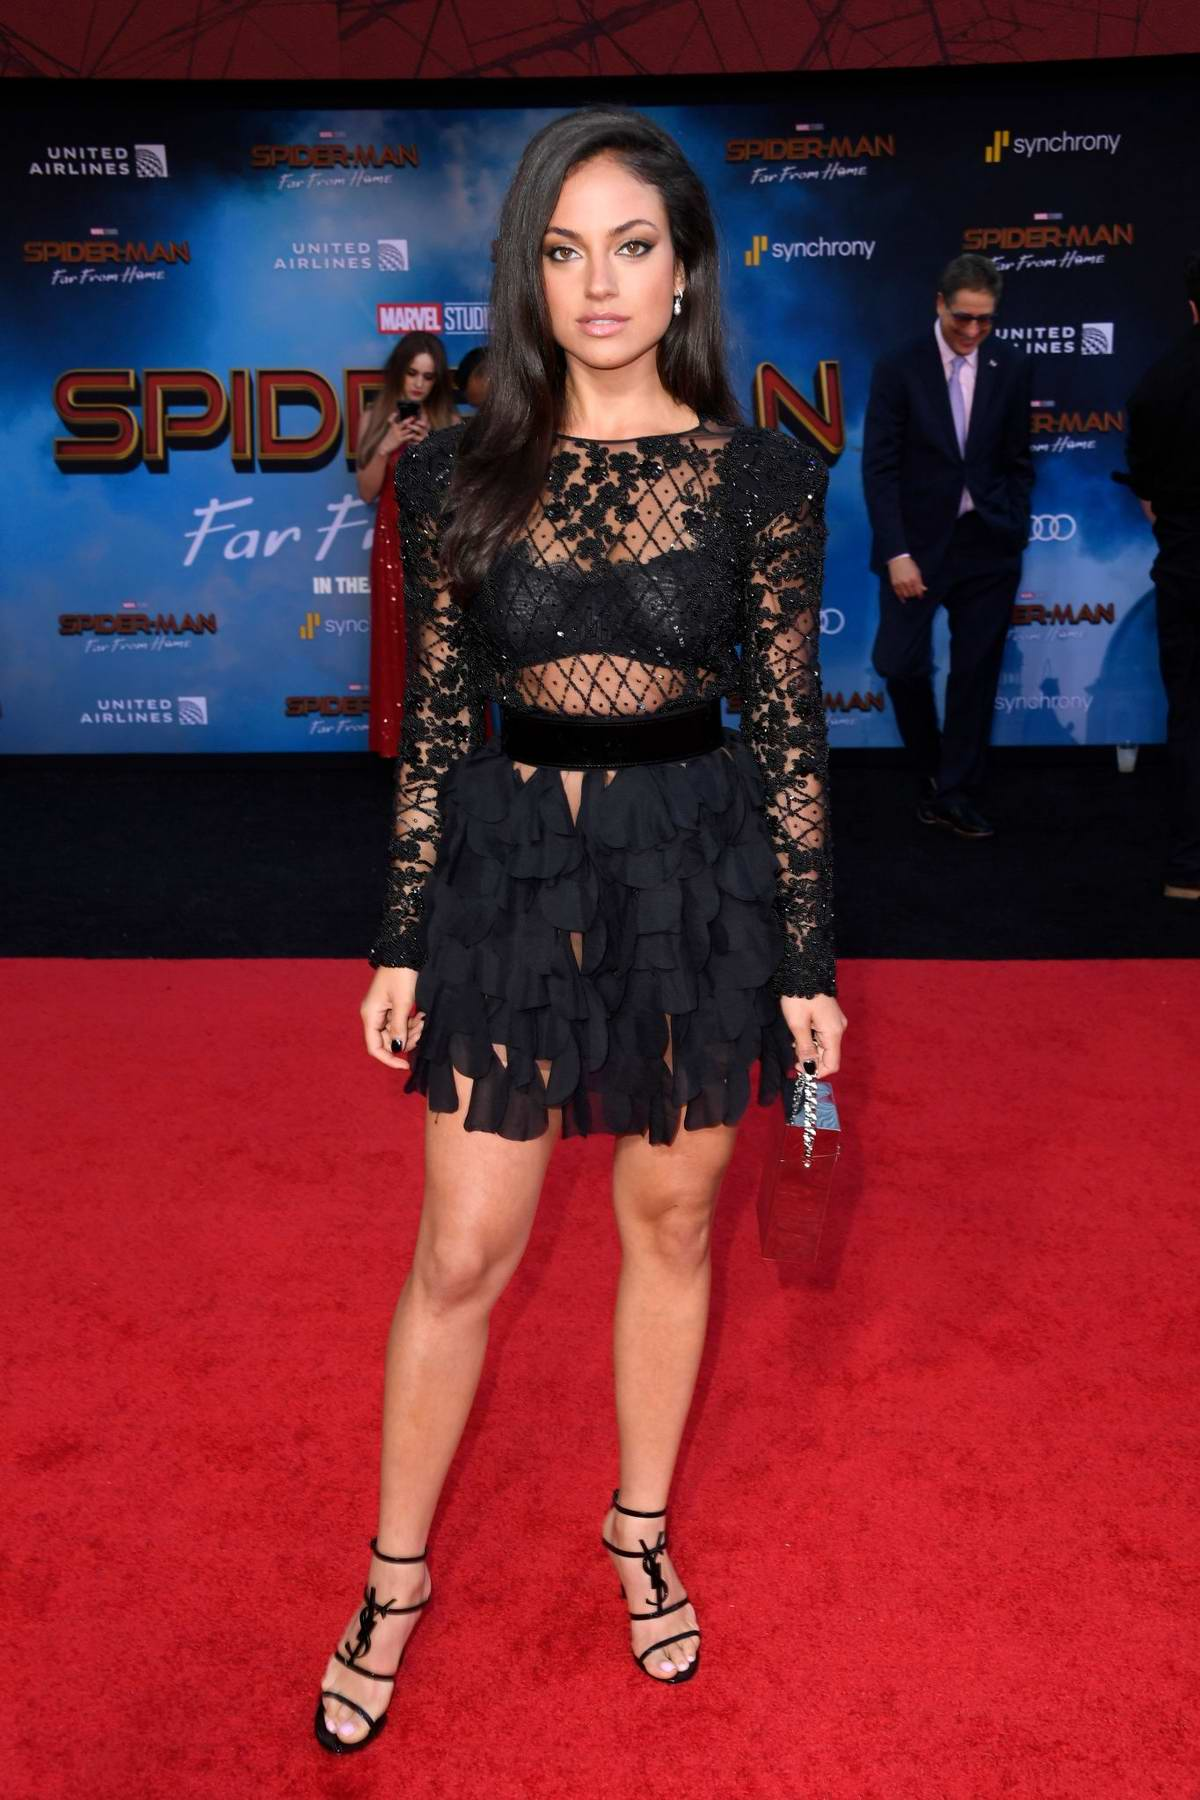 Inanna Sarkis attends the premiere of 'Spider-Man: Far From Home' at TCL Chinese Theatre in Hollywood, California